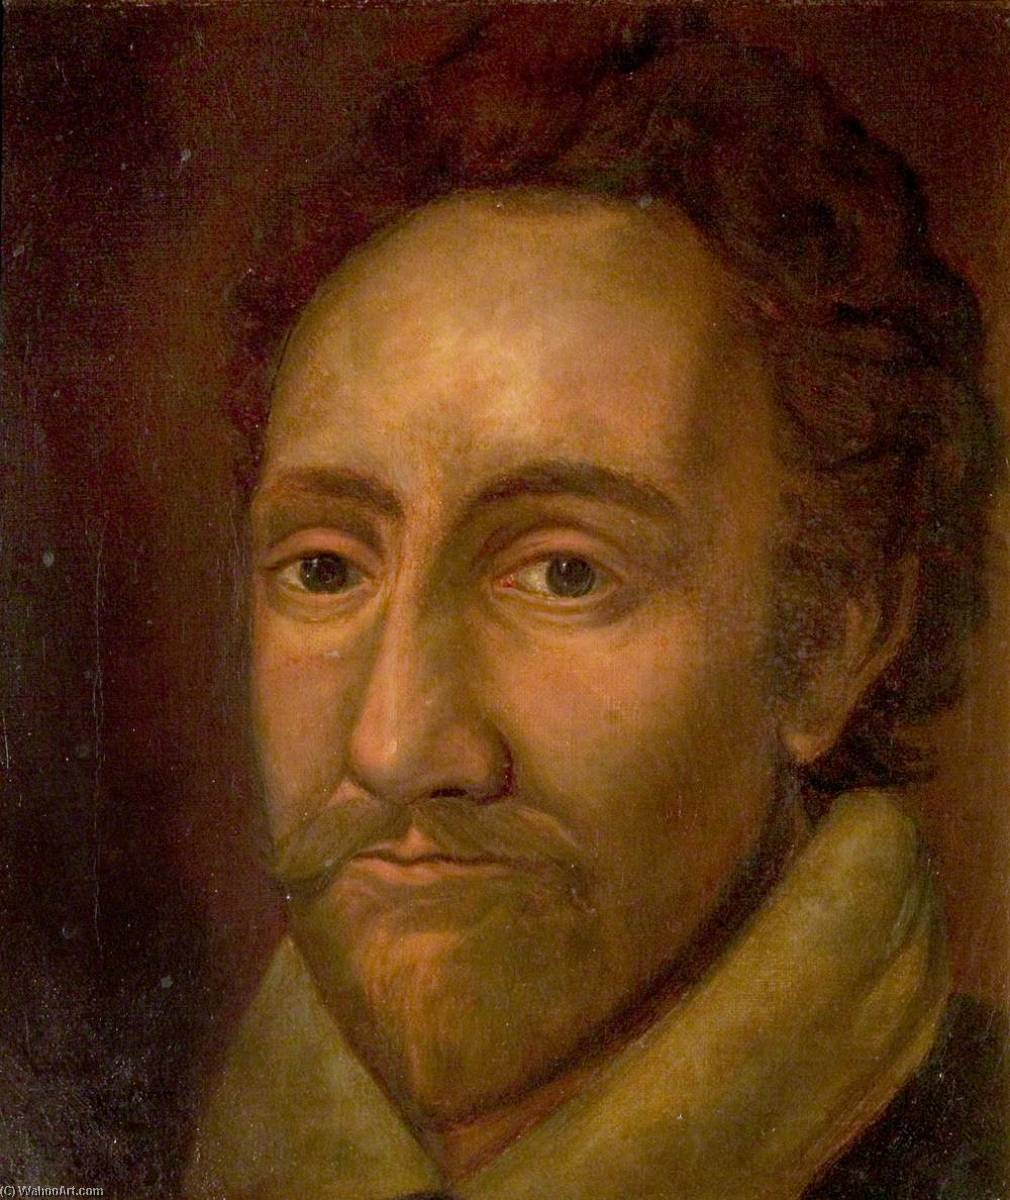 richard burbage Find great deals on ebay for richard burbage shop with confidence.